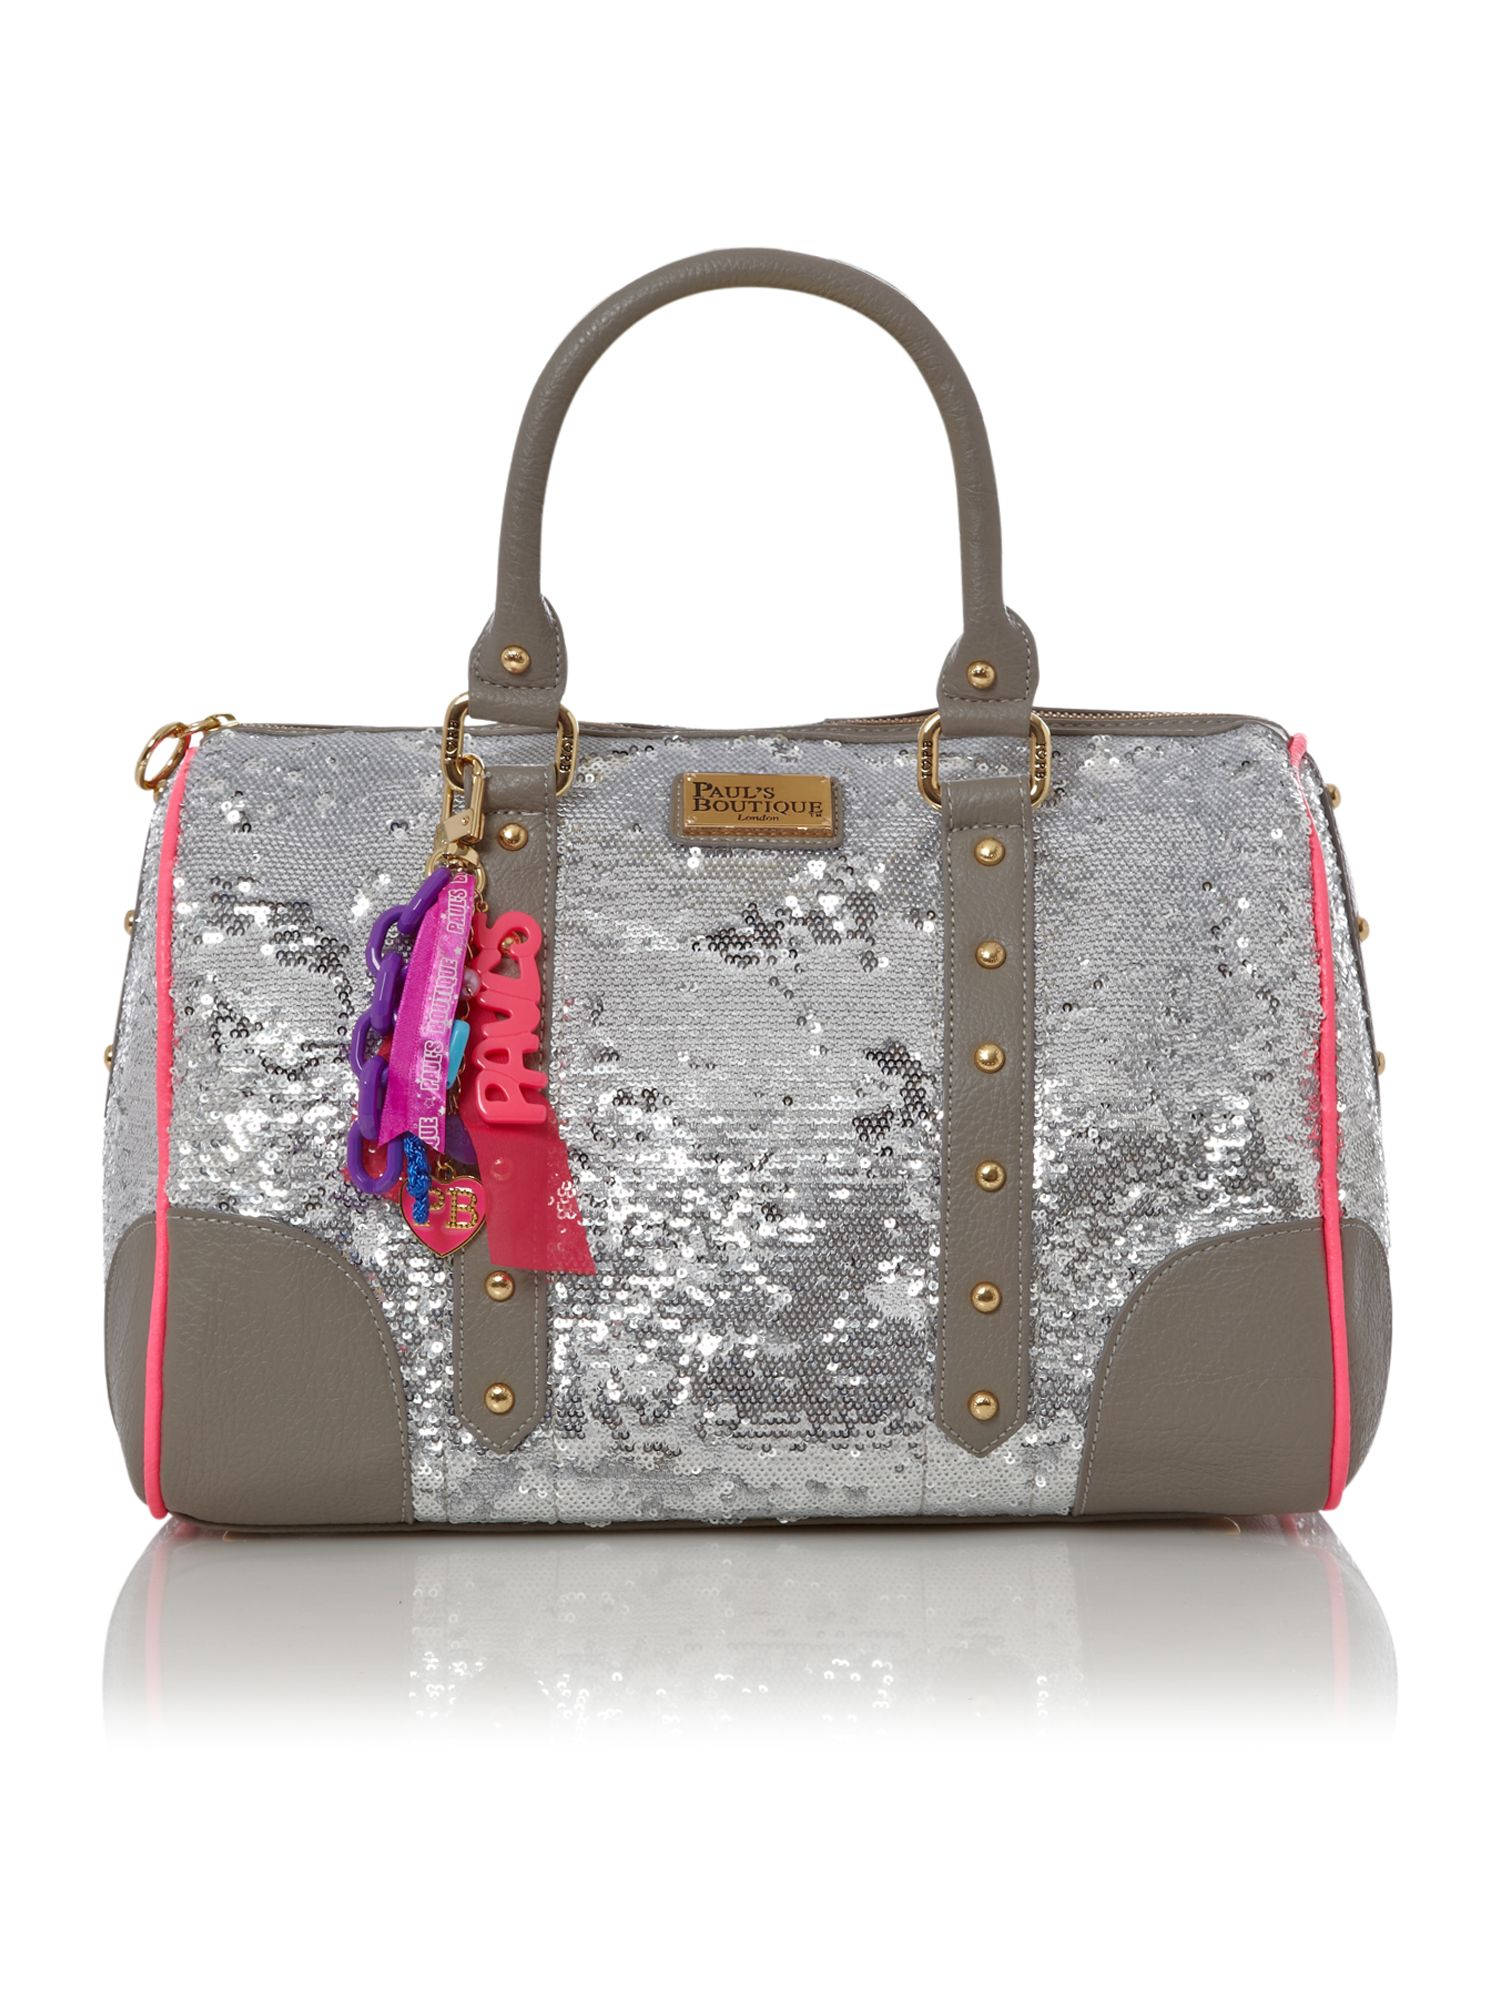 Sequin bowler bag